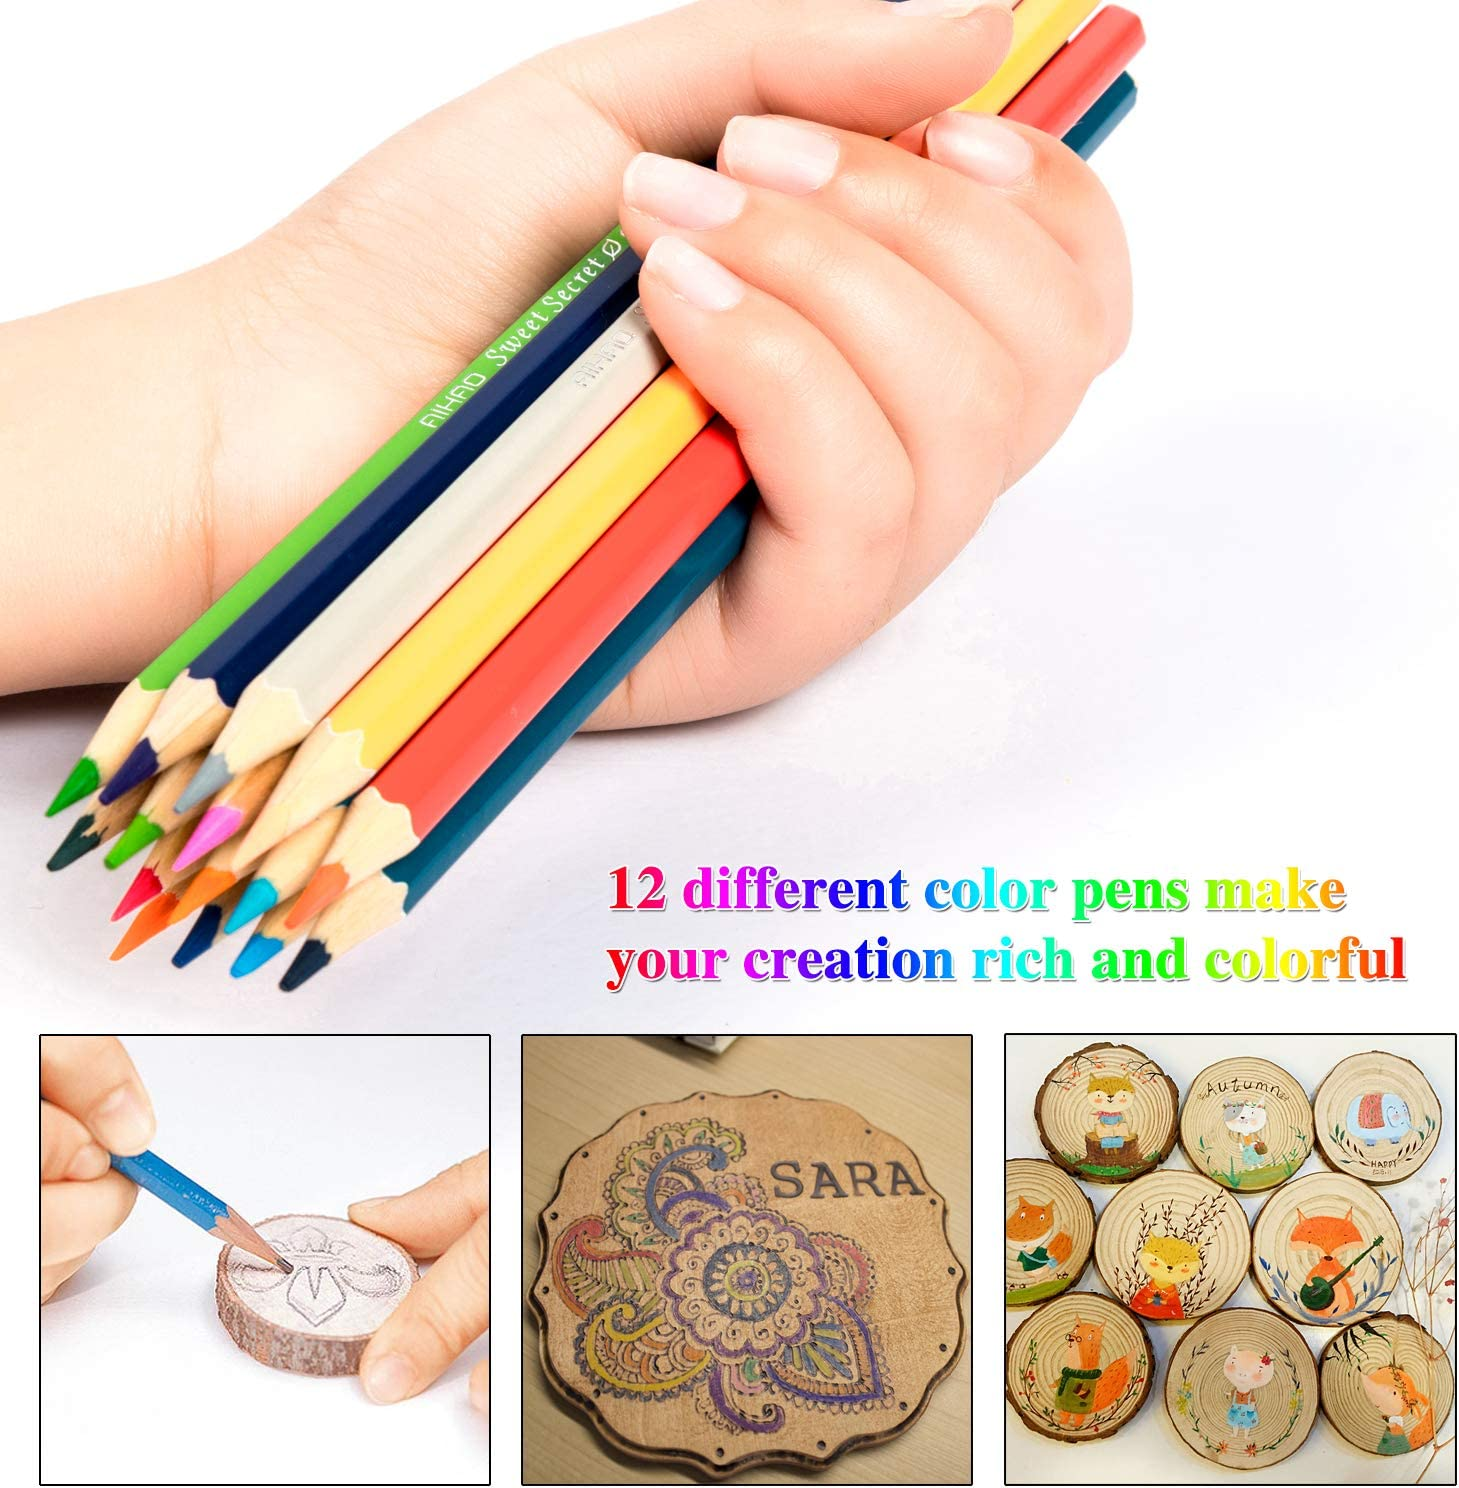 Carrying Case 2020 Upgraded Wood Burning Kit 46PCS Pyrography Pen with Adjustable On-Off Switch Temperature Control Include Various Wooden Kits Carving//Embossing//Soldering Tips UL Listed